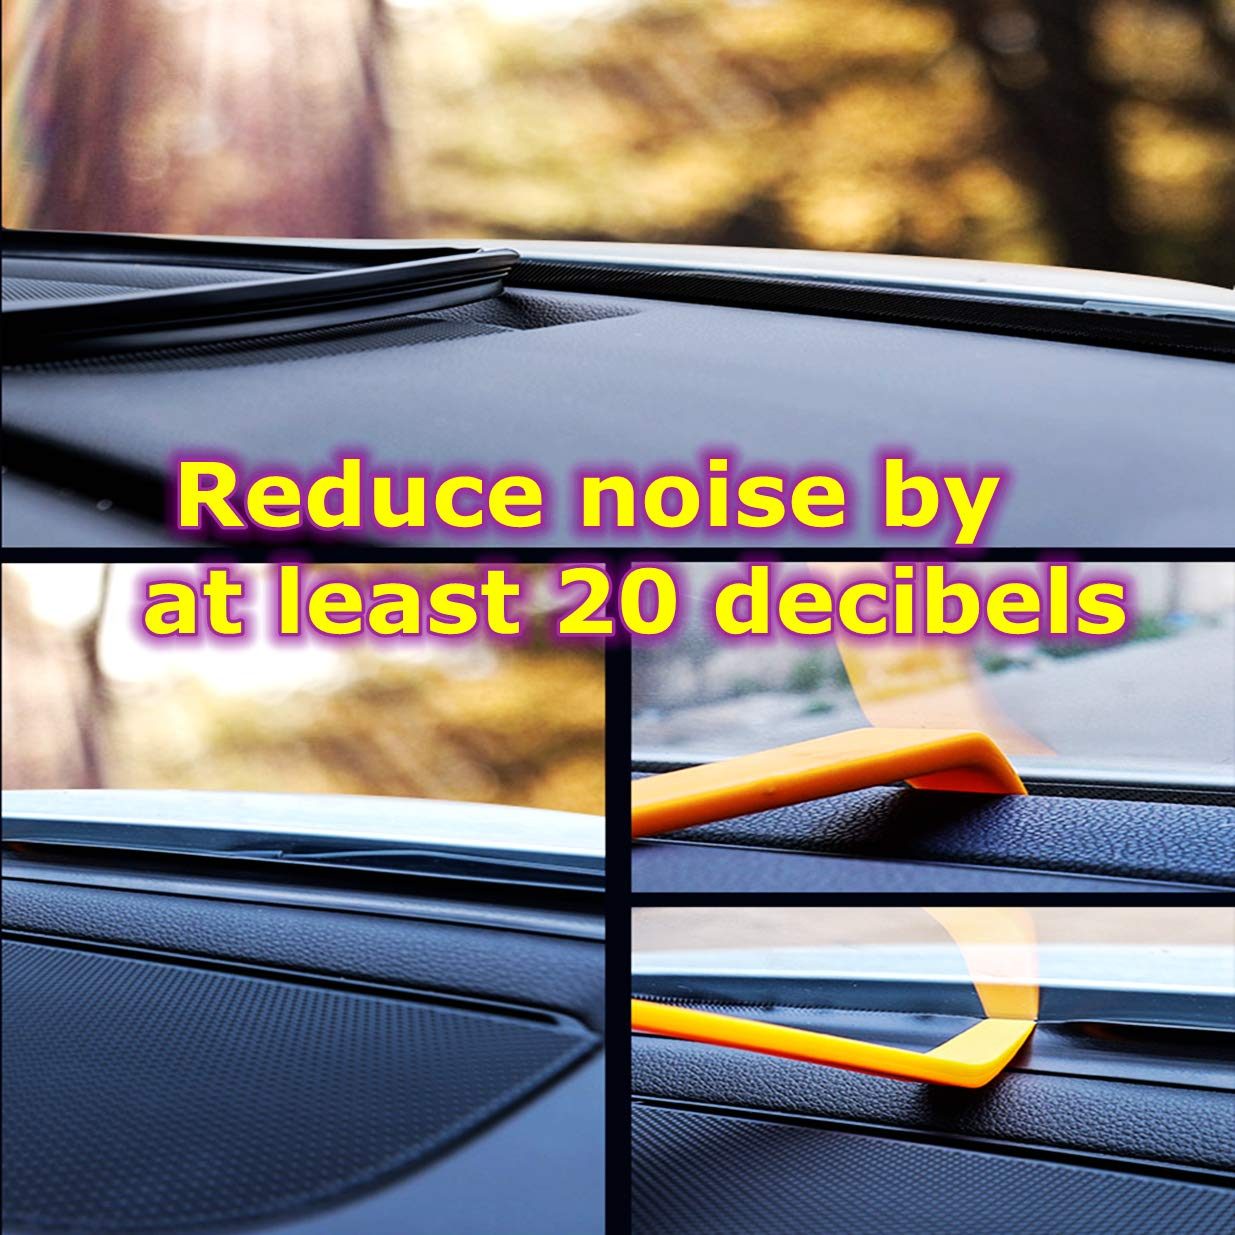 5.24Ft(160cm) Edge Trim Black Rubber Seal Protector Guard Strip for The Space Between Dashboard and Windshield of Cars-Keep the car clean and quiet Huole2